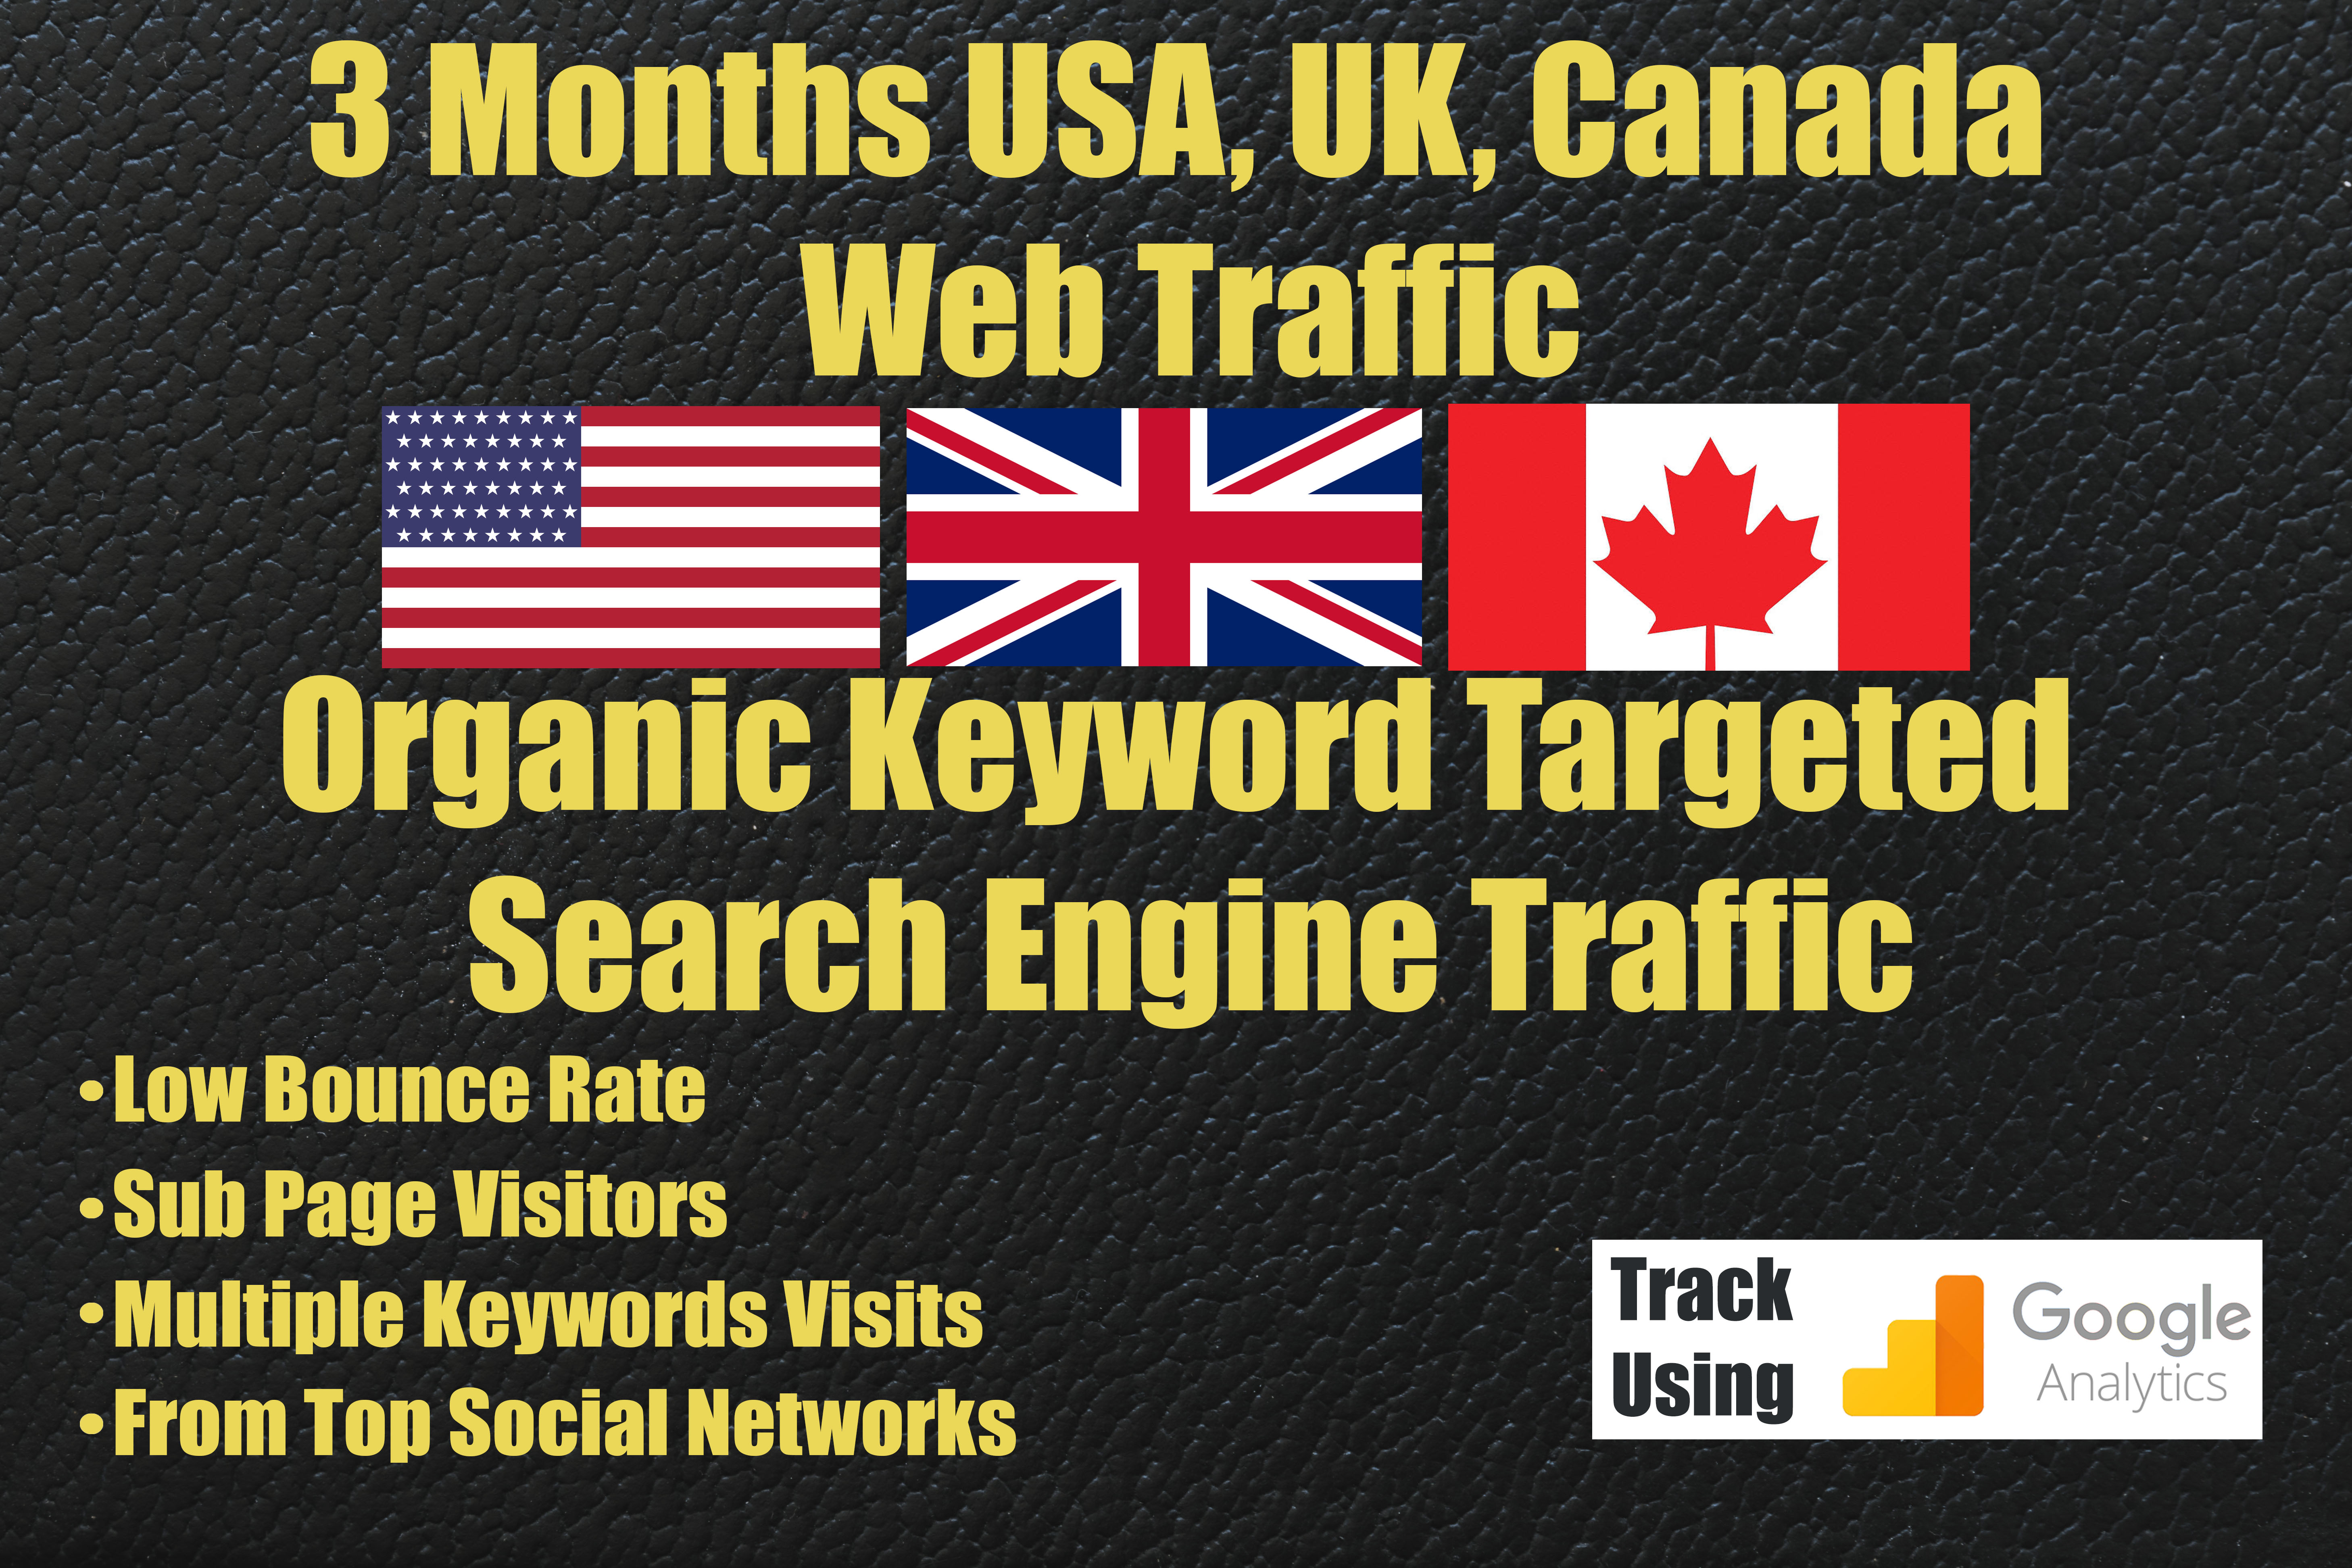 USA UK Canada Google Organic Traffic for 3 Months Non stop 24/7